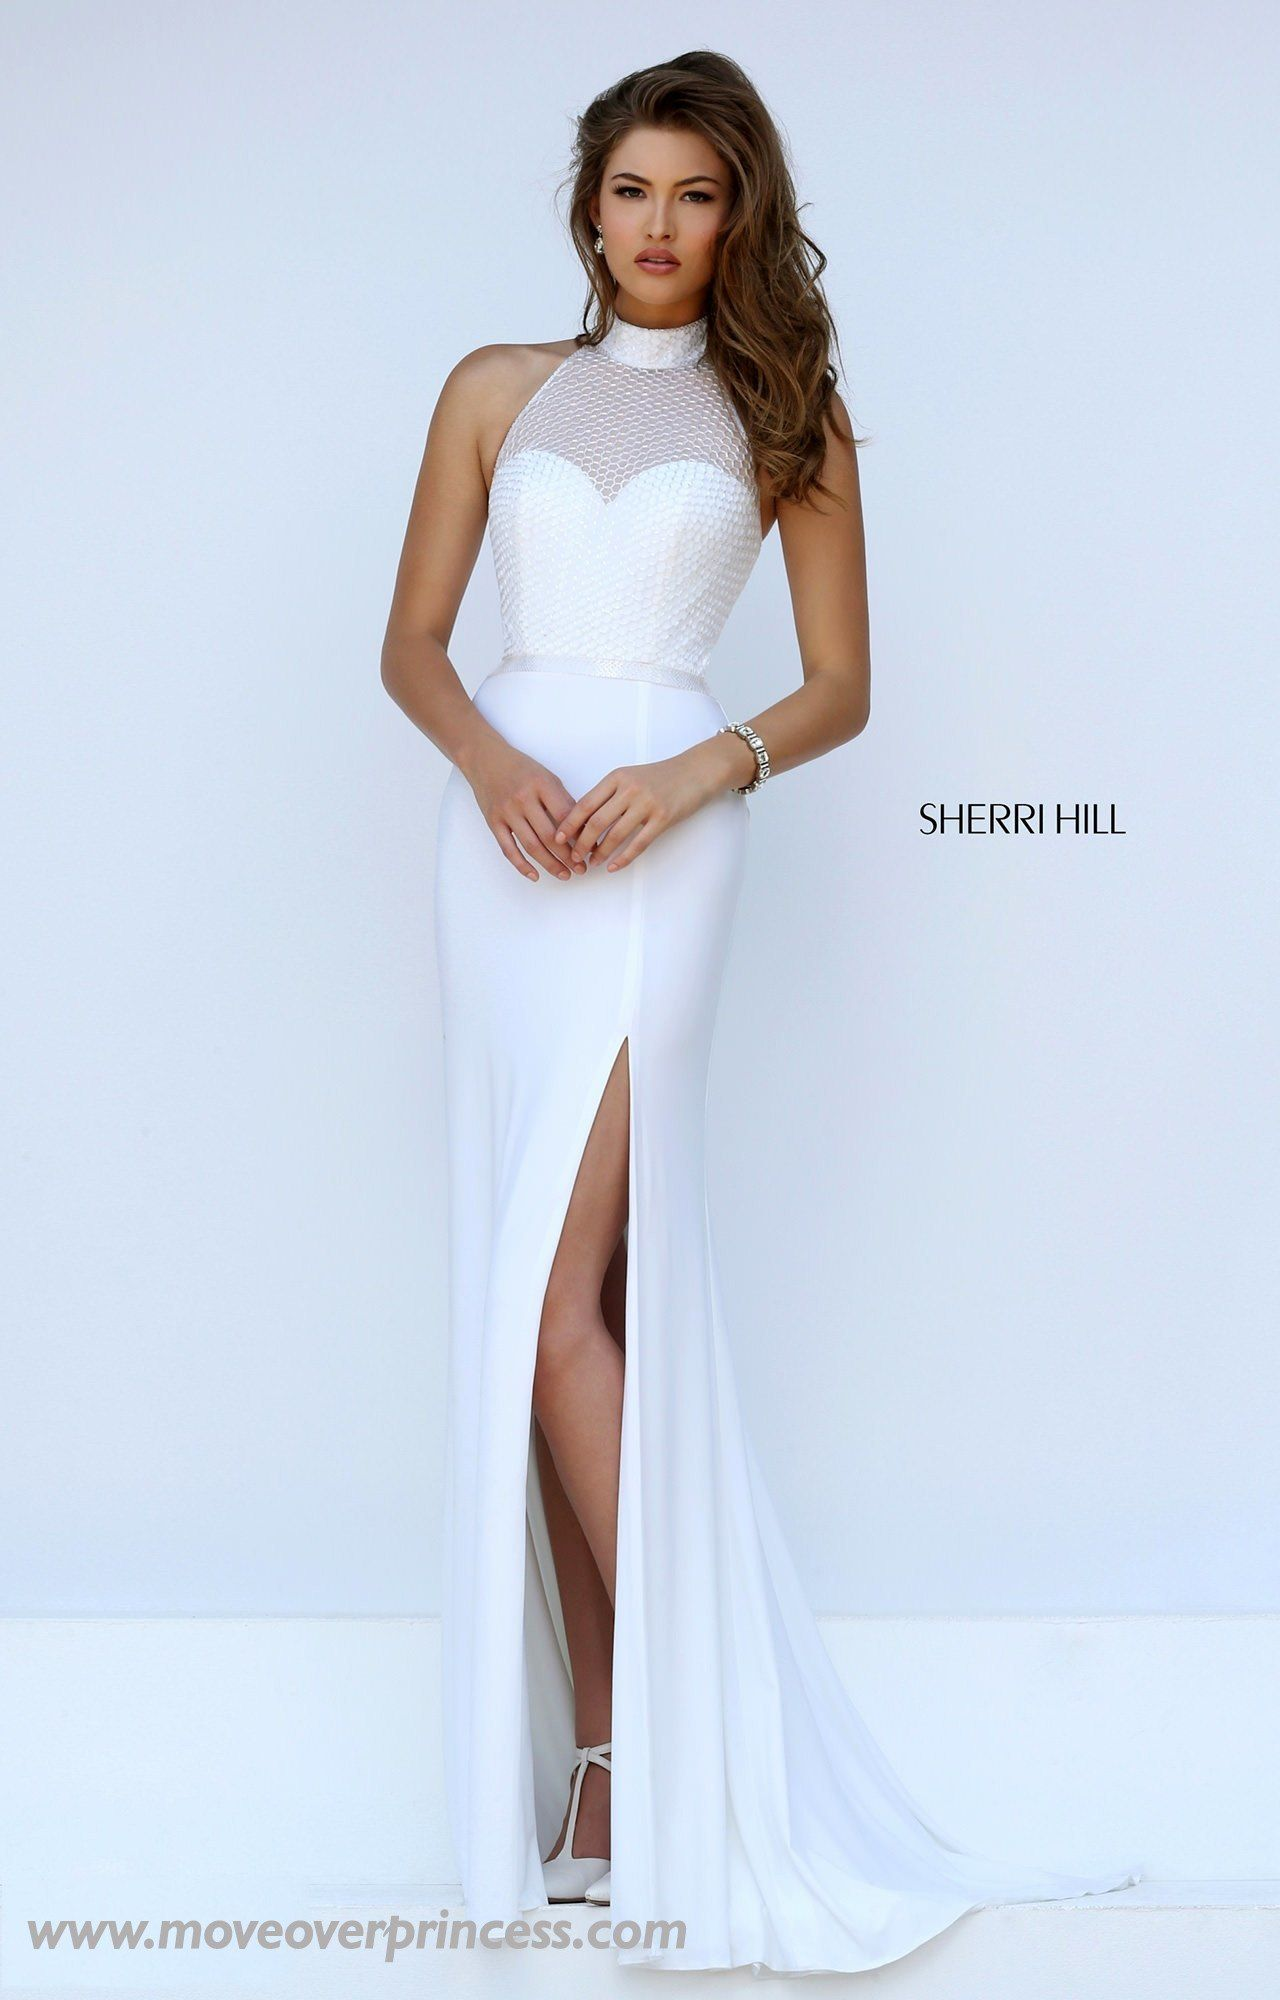 4bbbfdef6938 This Sherri Hill looks like a 2-piece from the back but it's solid in the  front! Perfect for the schools that won't allow actual 2-pieces!